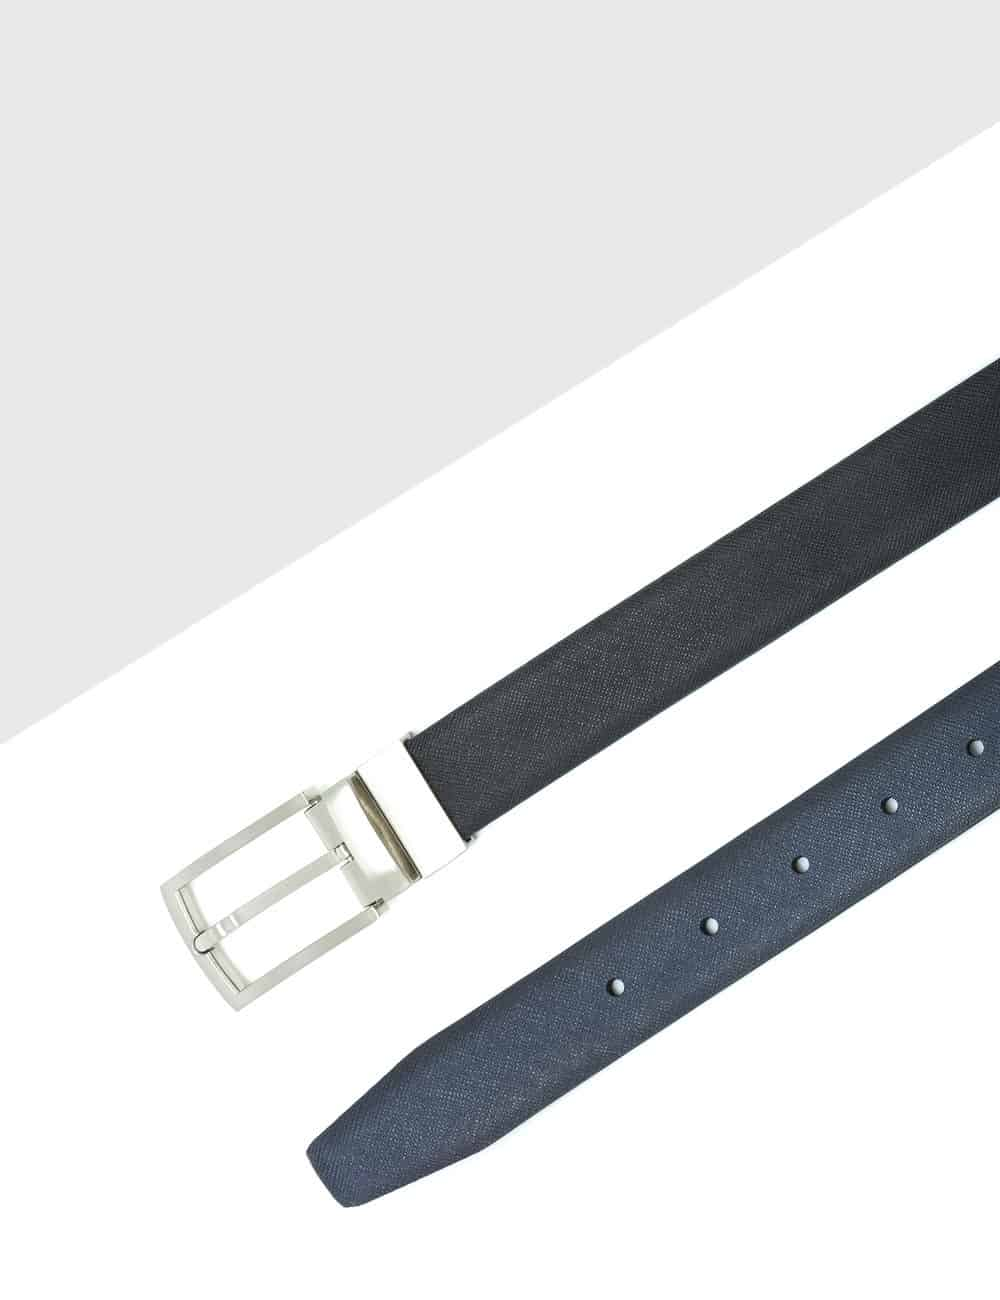 Black / Navy Textured Reversible Leather Belt LBR3.8